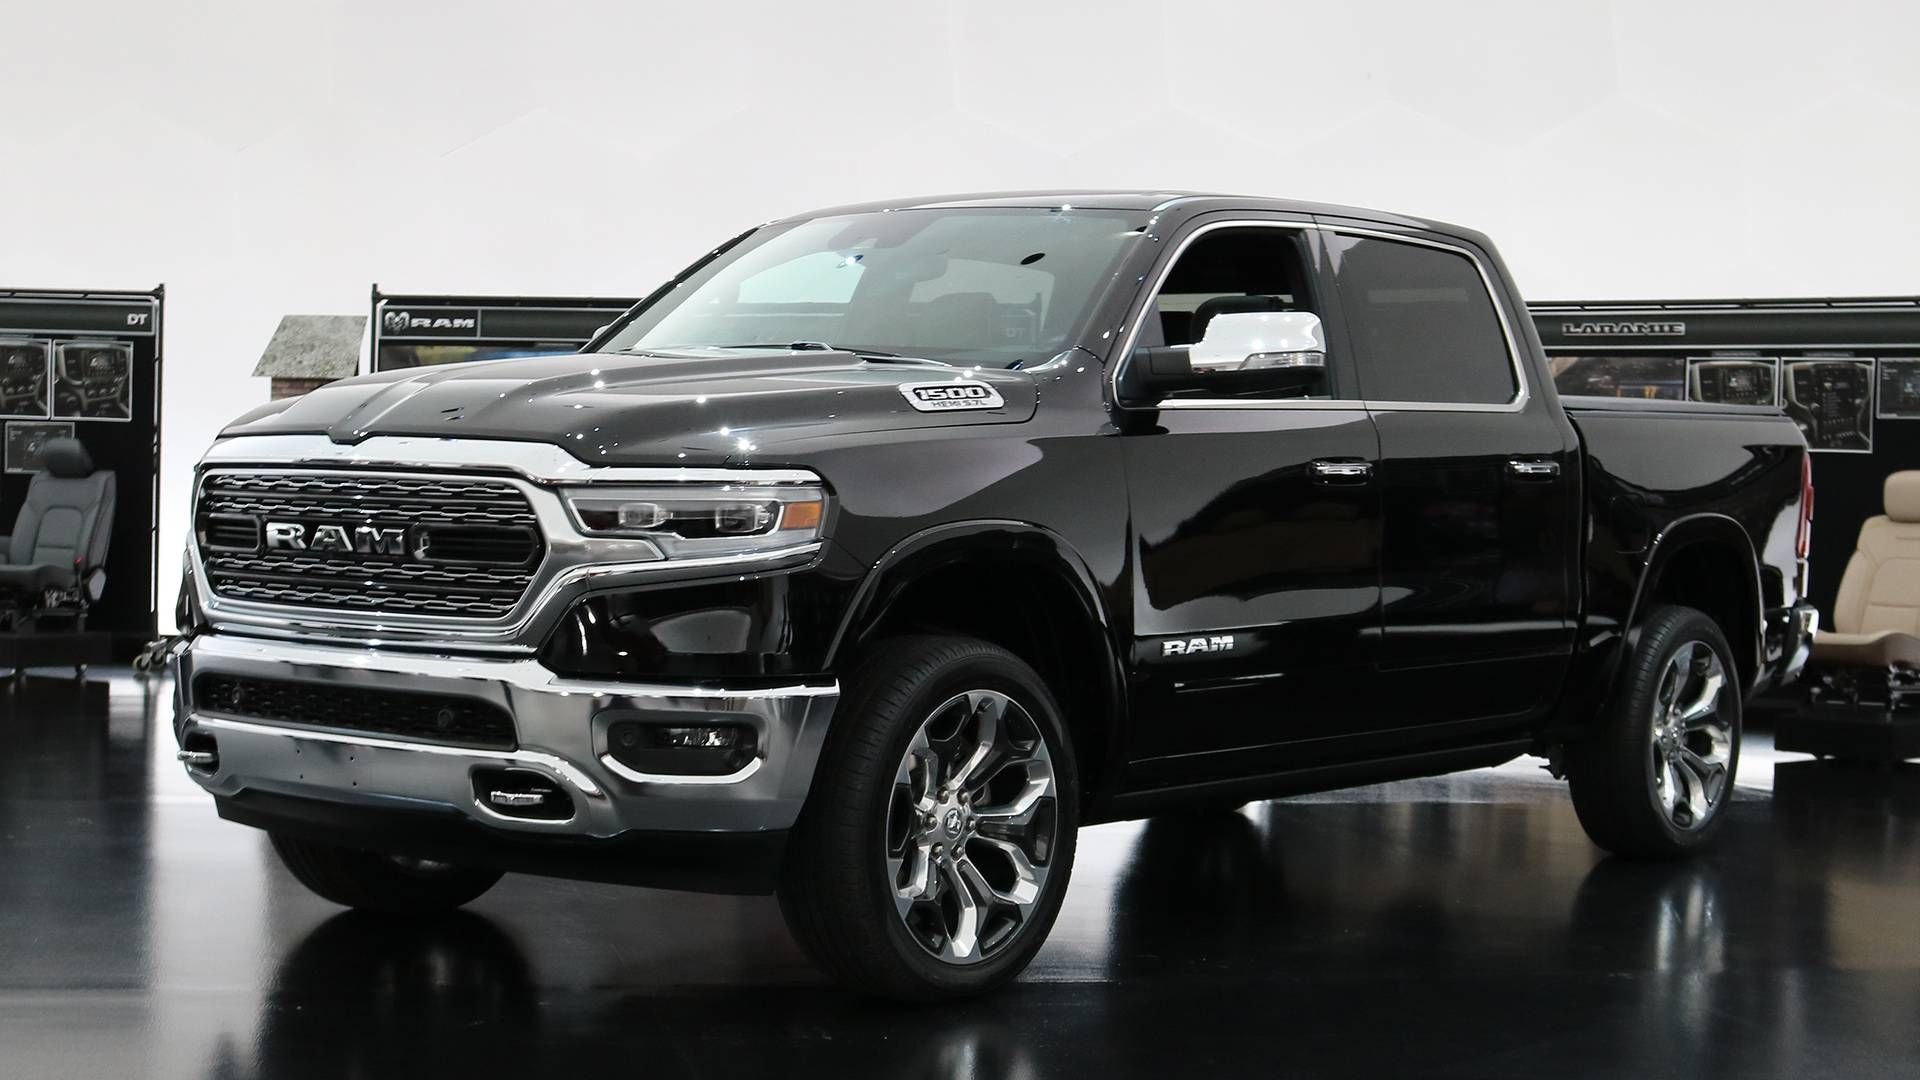 2019 Ram 1500 | Motor1.com Photos (With images) | Ram cars ...